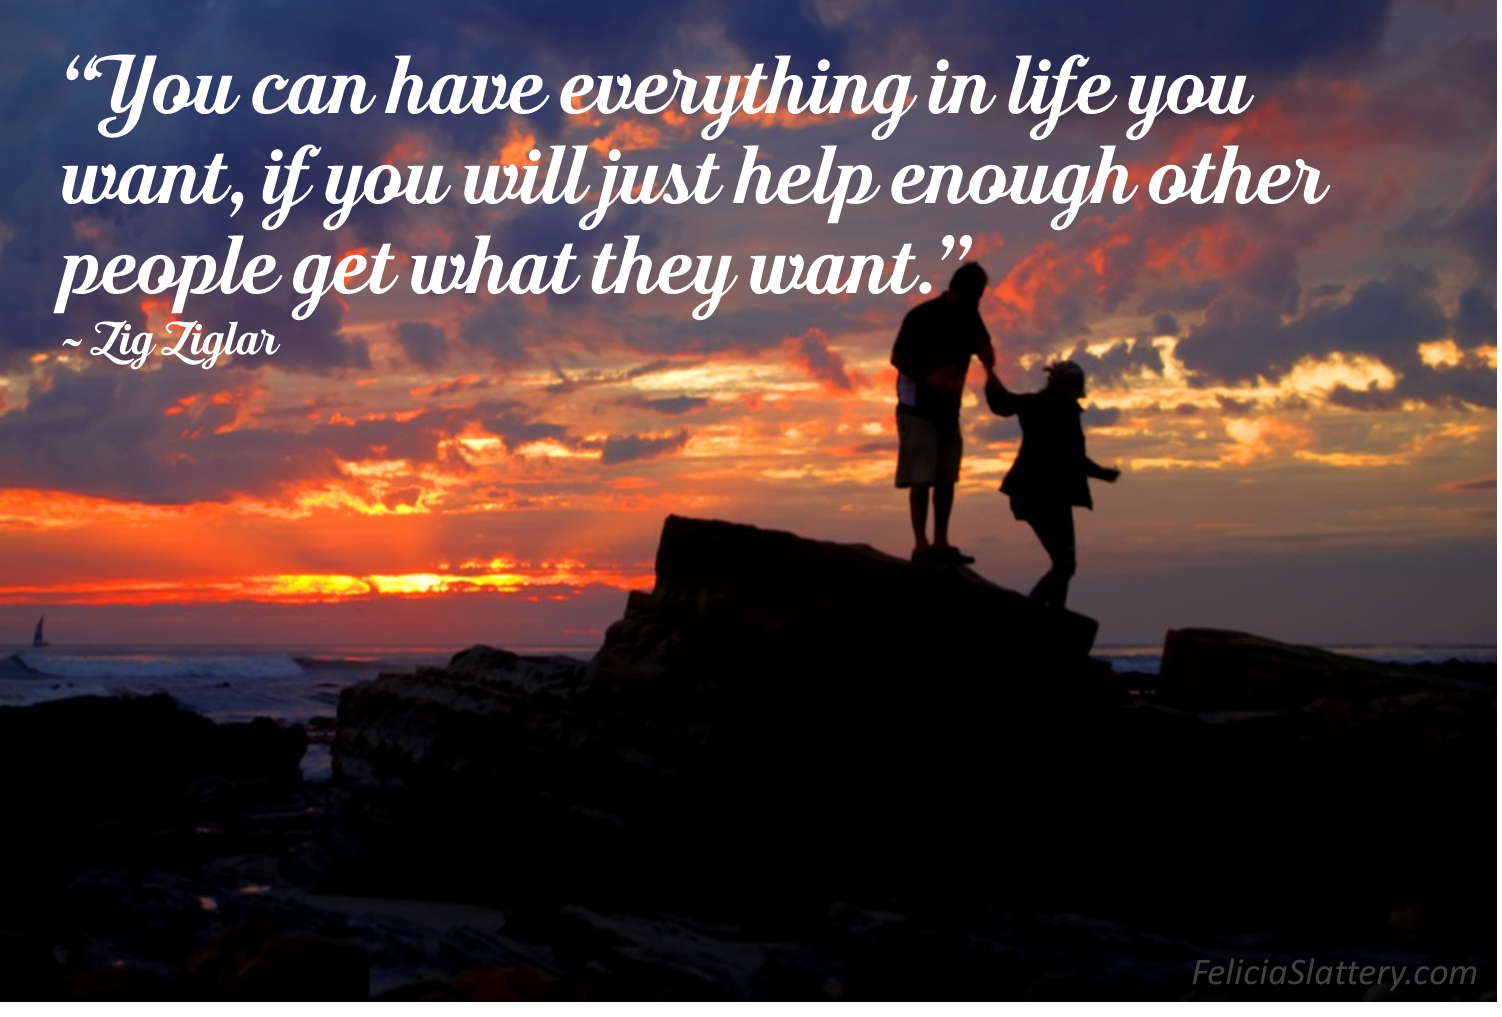 """You can have everything in life you want, if you will just help enough other people get what they want."" Zig Ziglar"